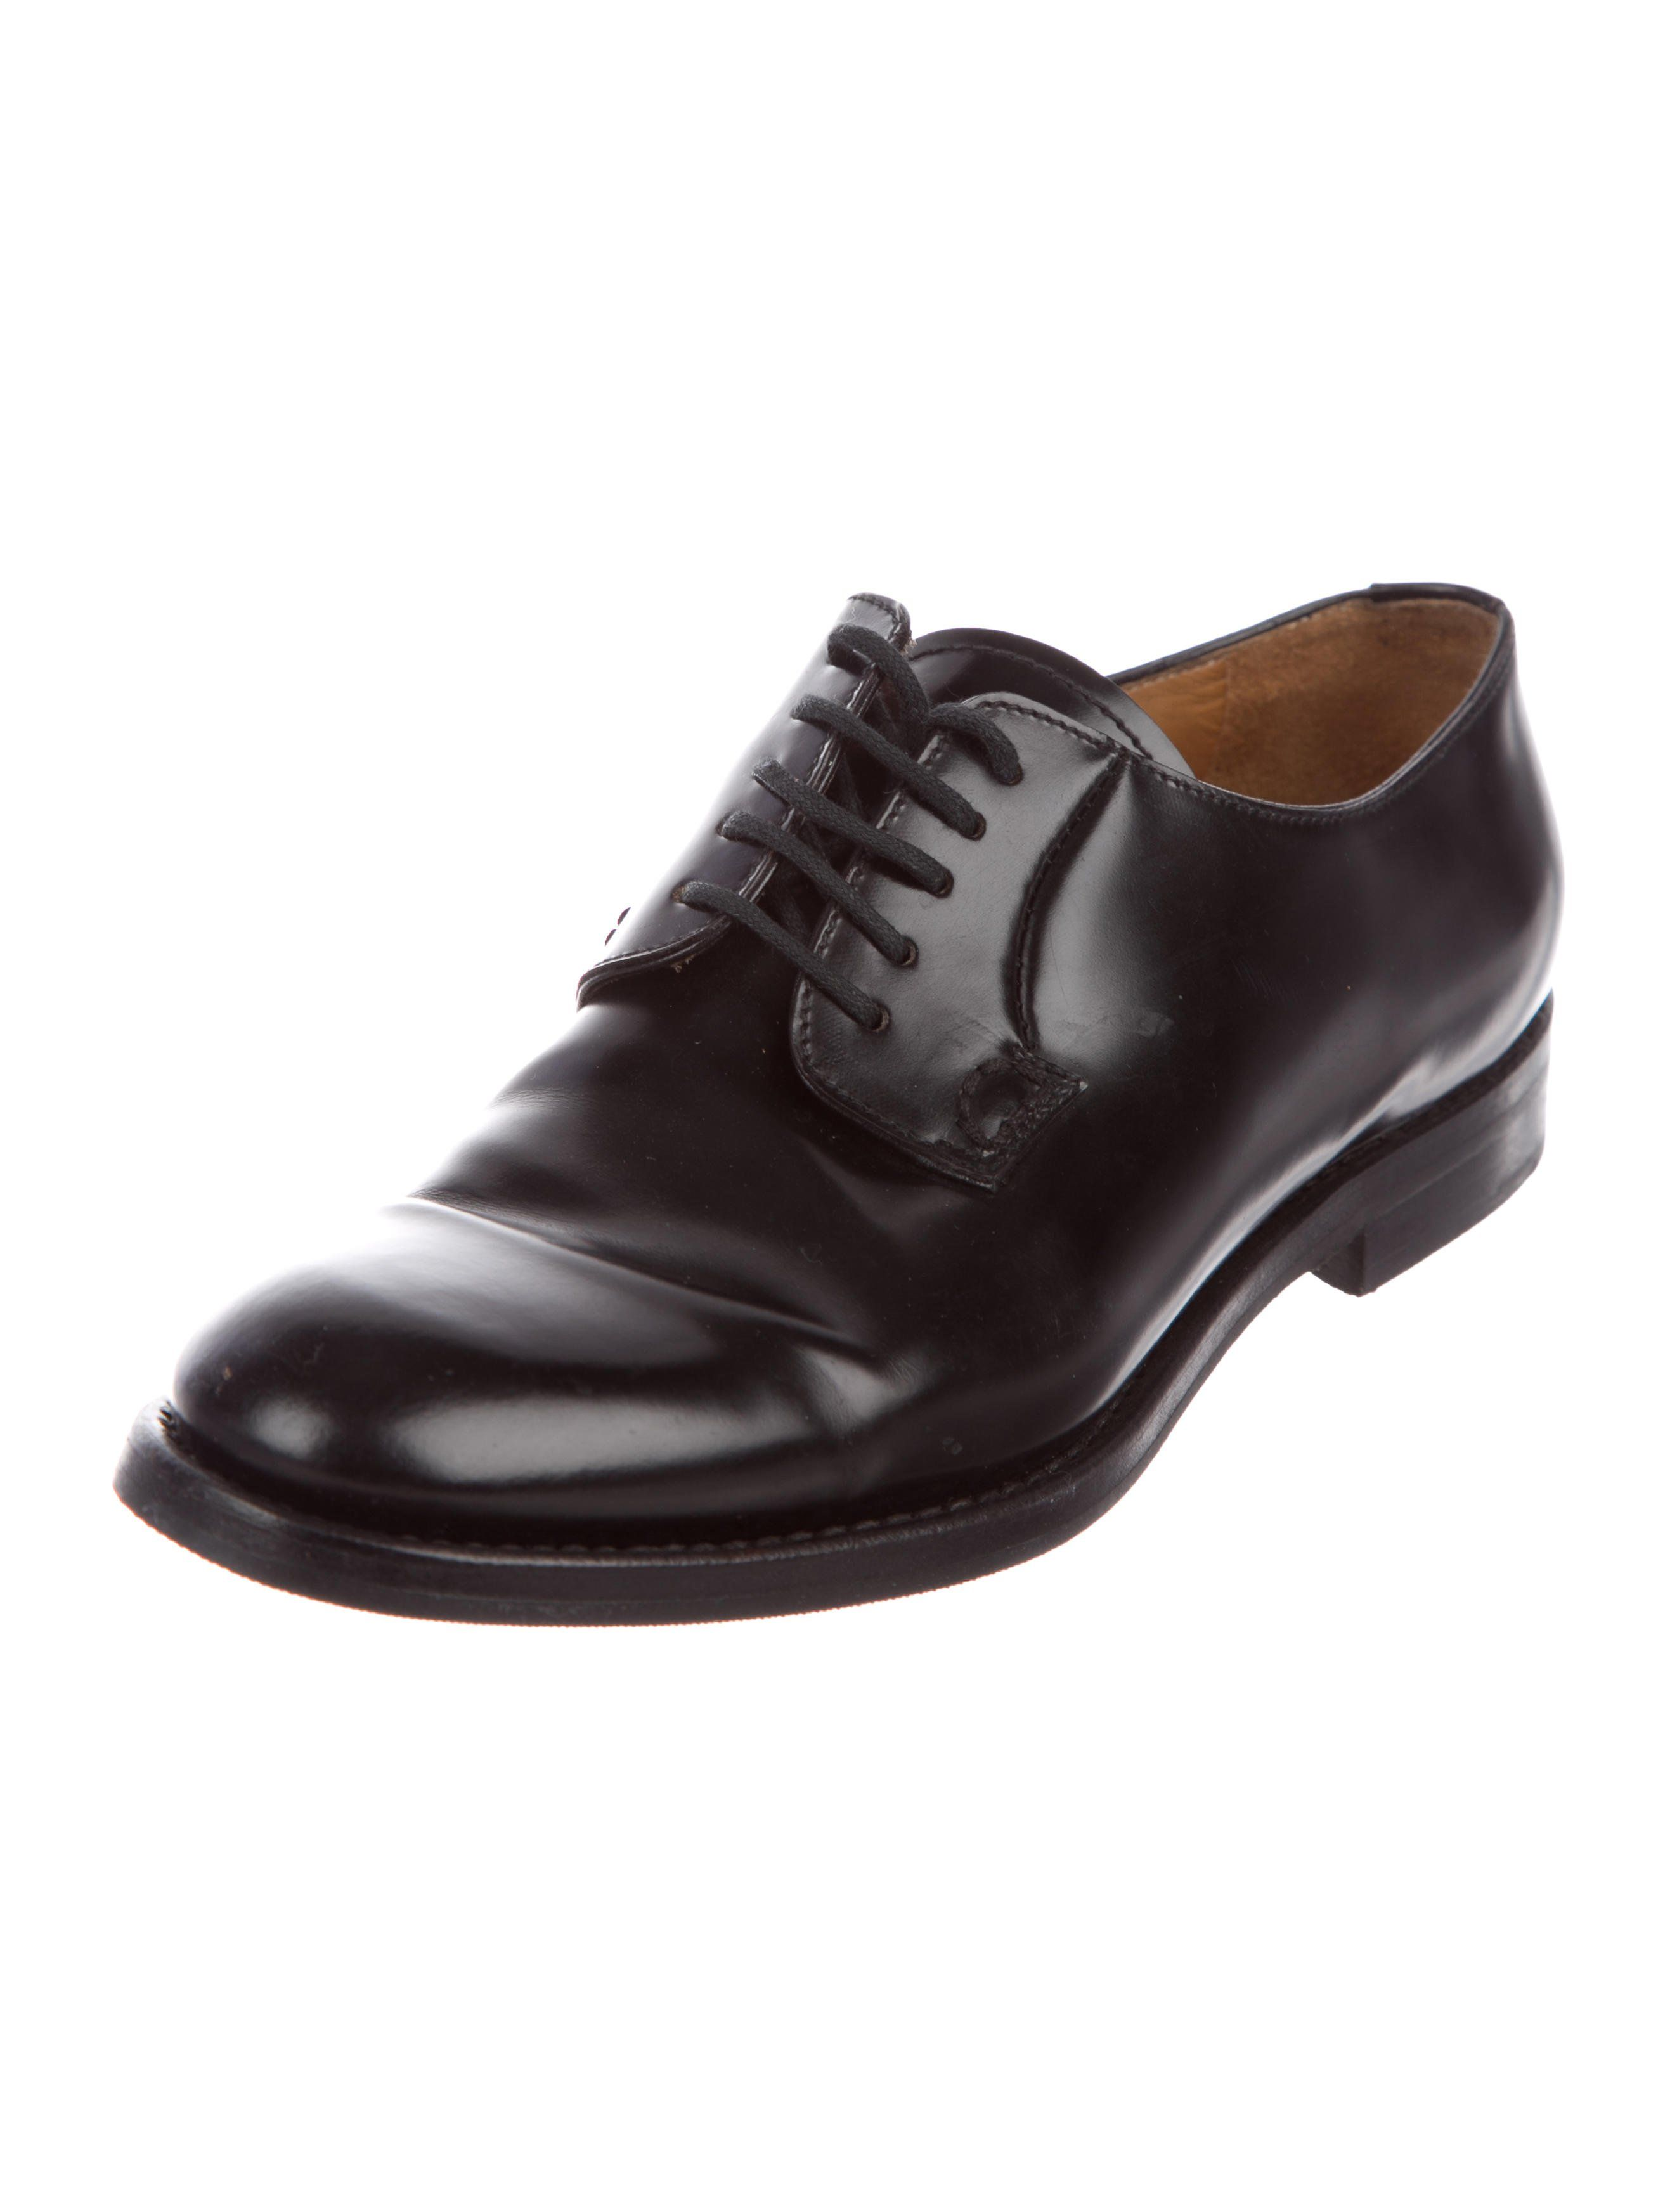 Church's Leather Round-Toe Oxfords huge surprise online 7kAg4f